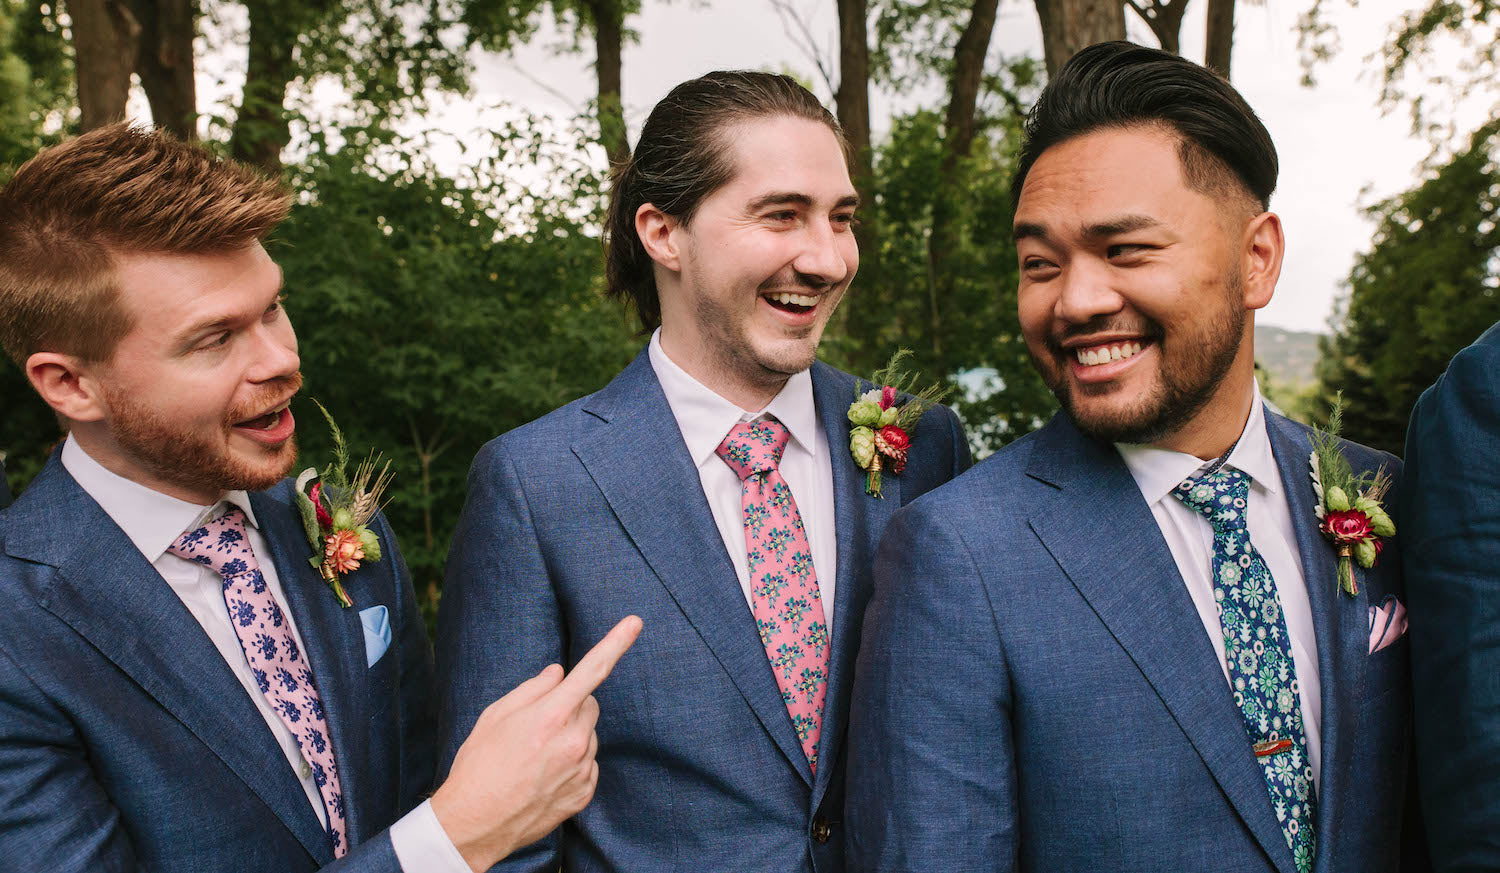 Mix and Match Groomsmen Ties